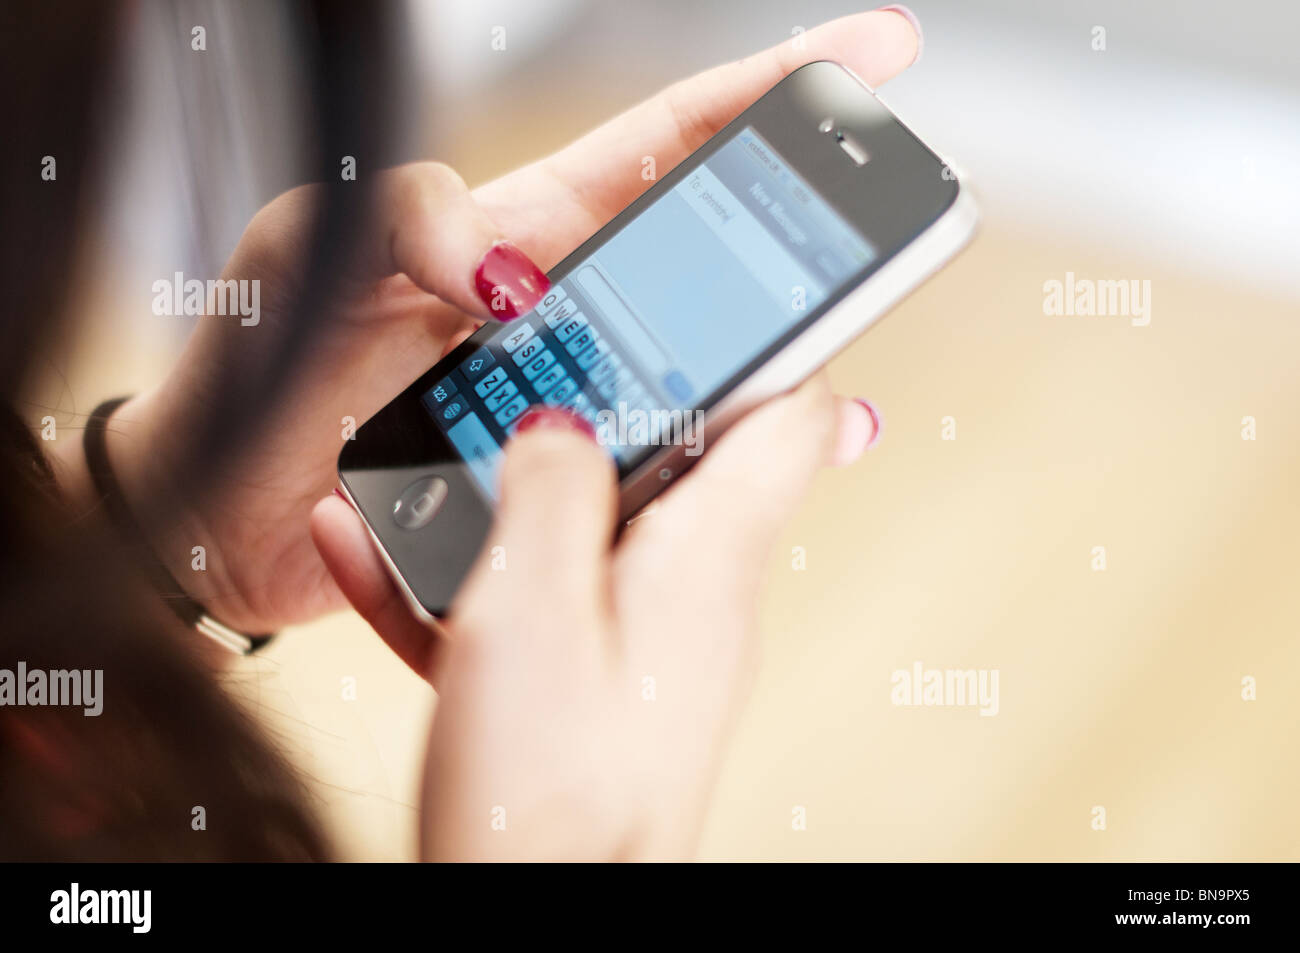 Girl texting on apple I phone 4 smart phone-close-up - Stock Image